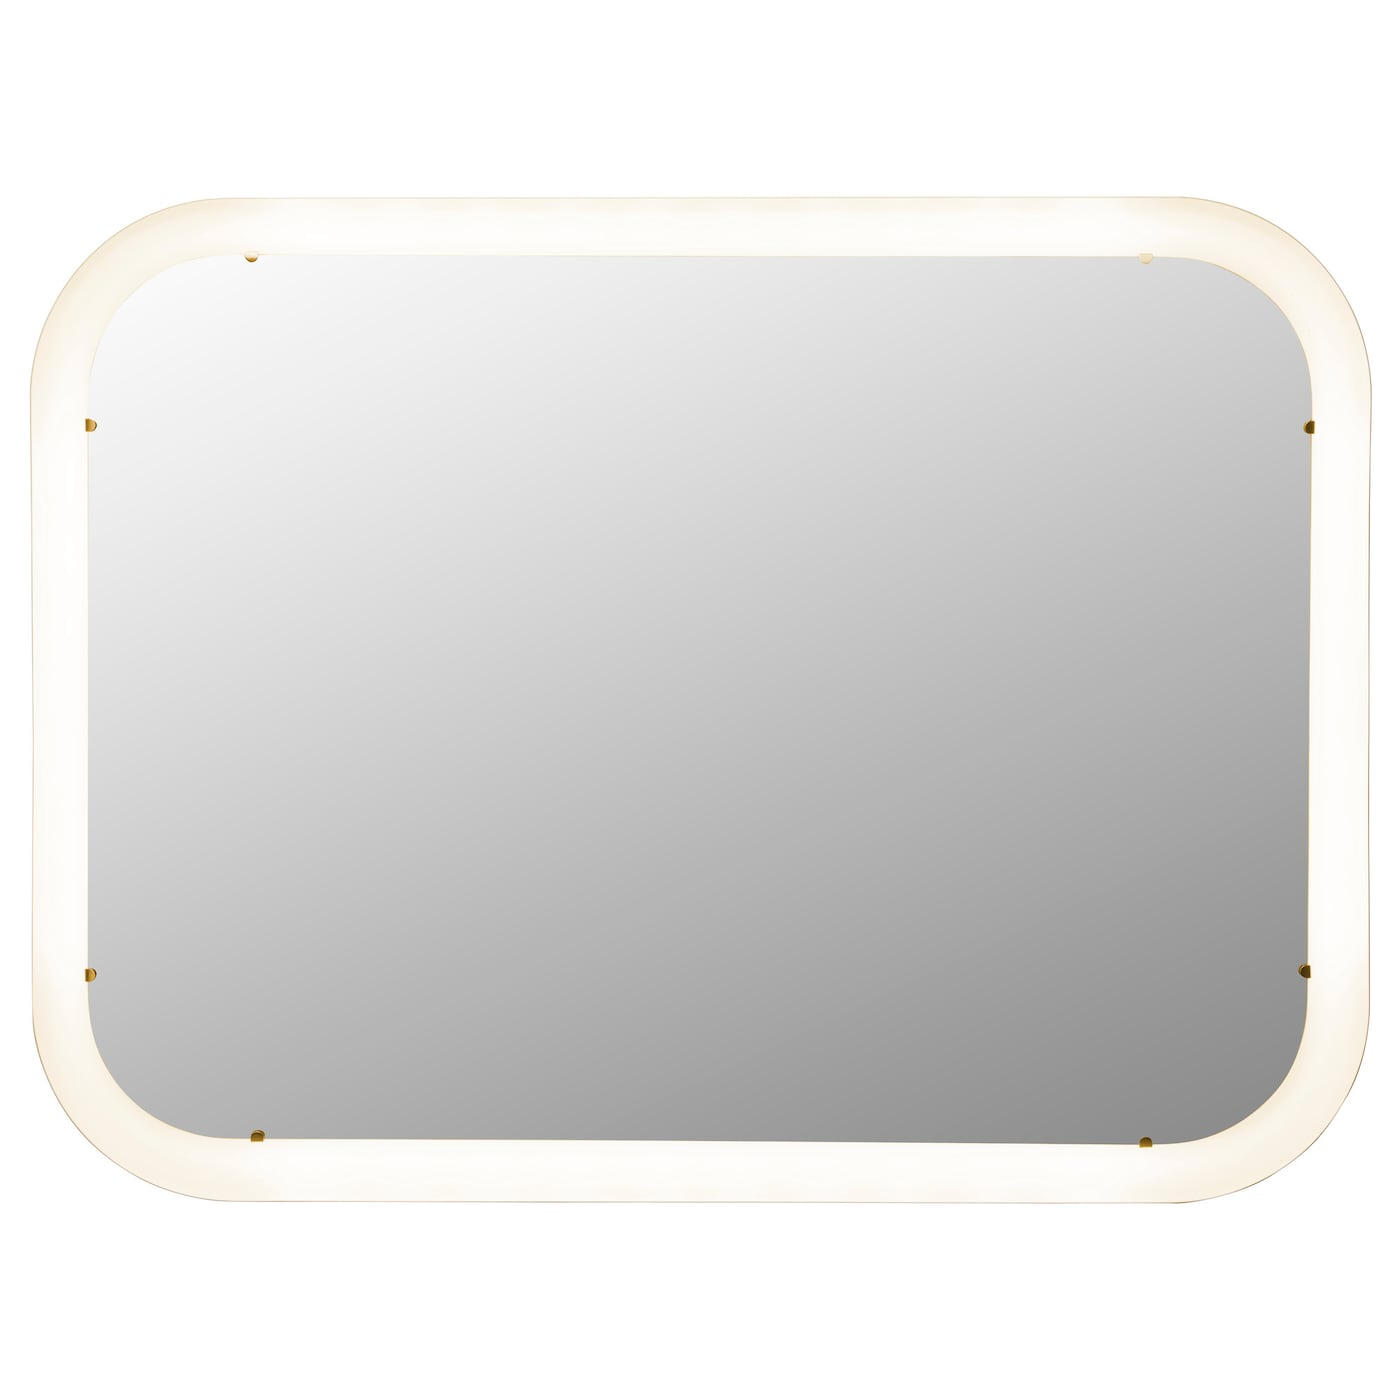 Storjorm mirror with integrated lighting white 80x60 cm ikea for Miroir rond ikea